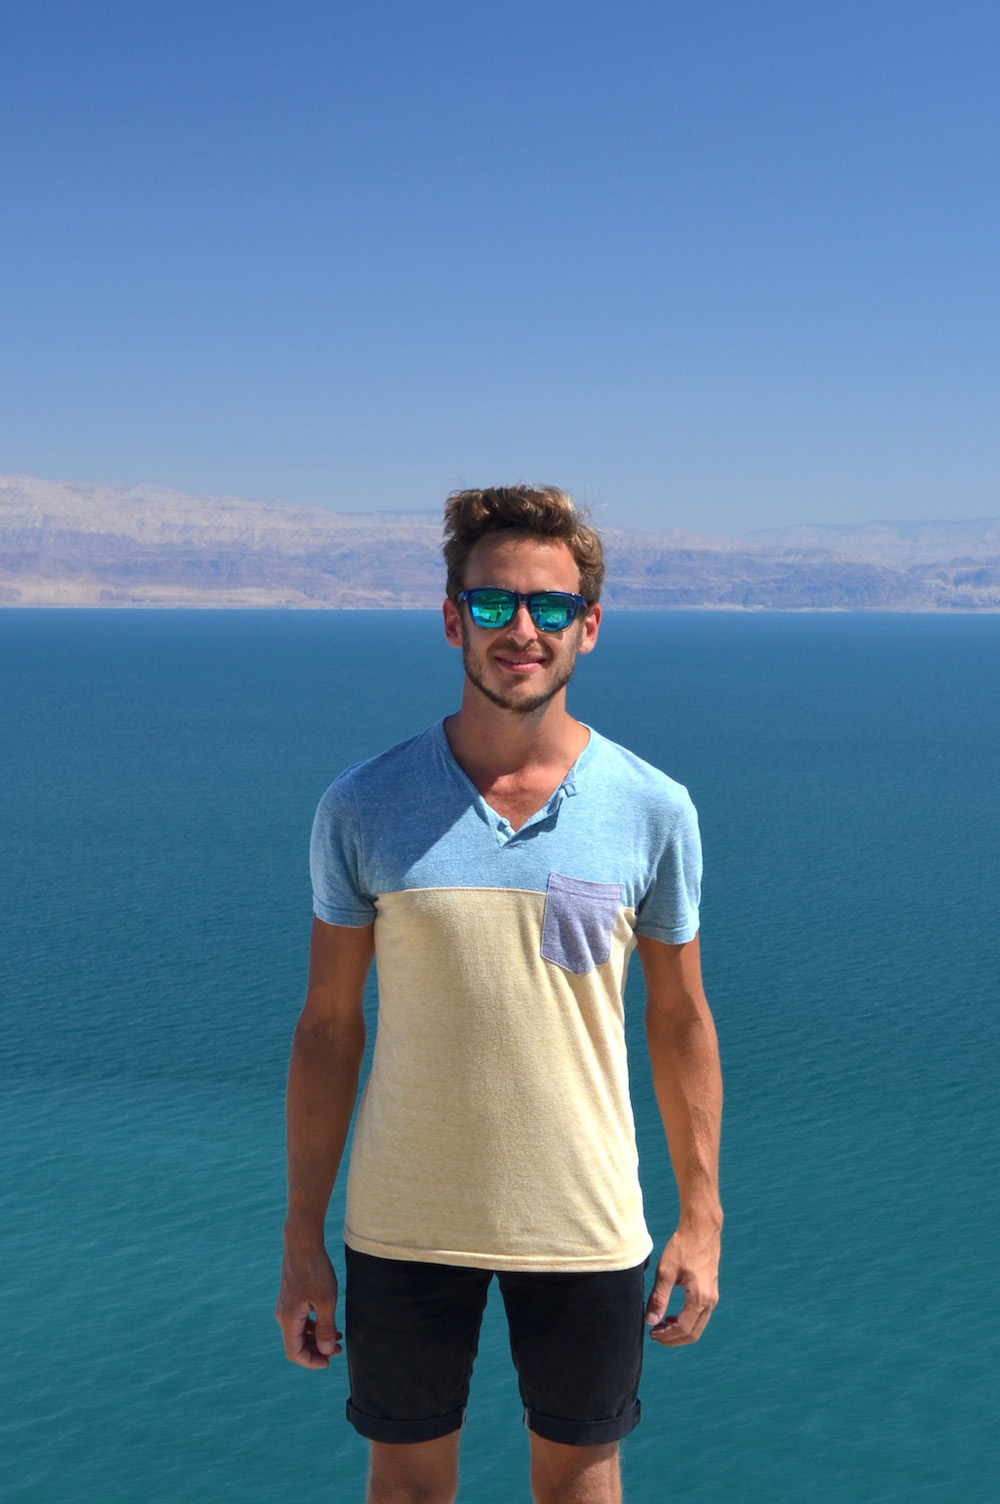 Robert Schrader at the Dead Sea